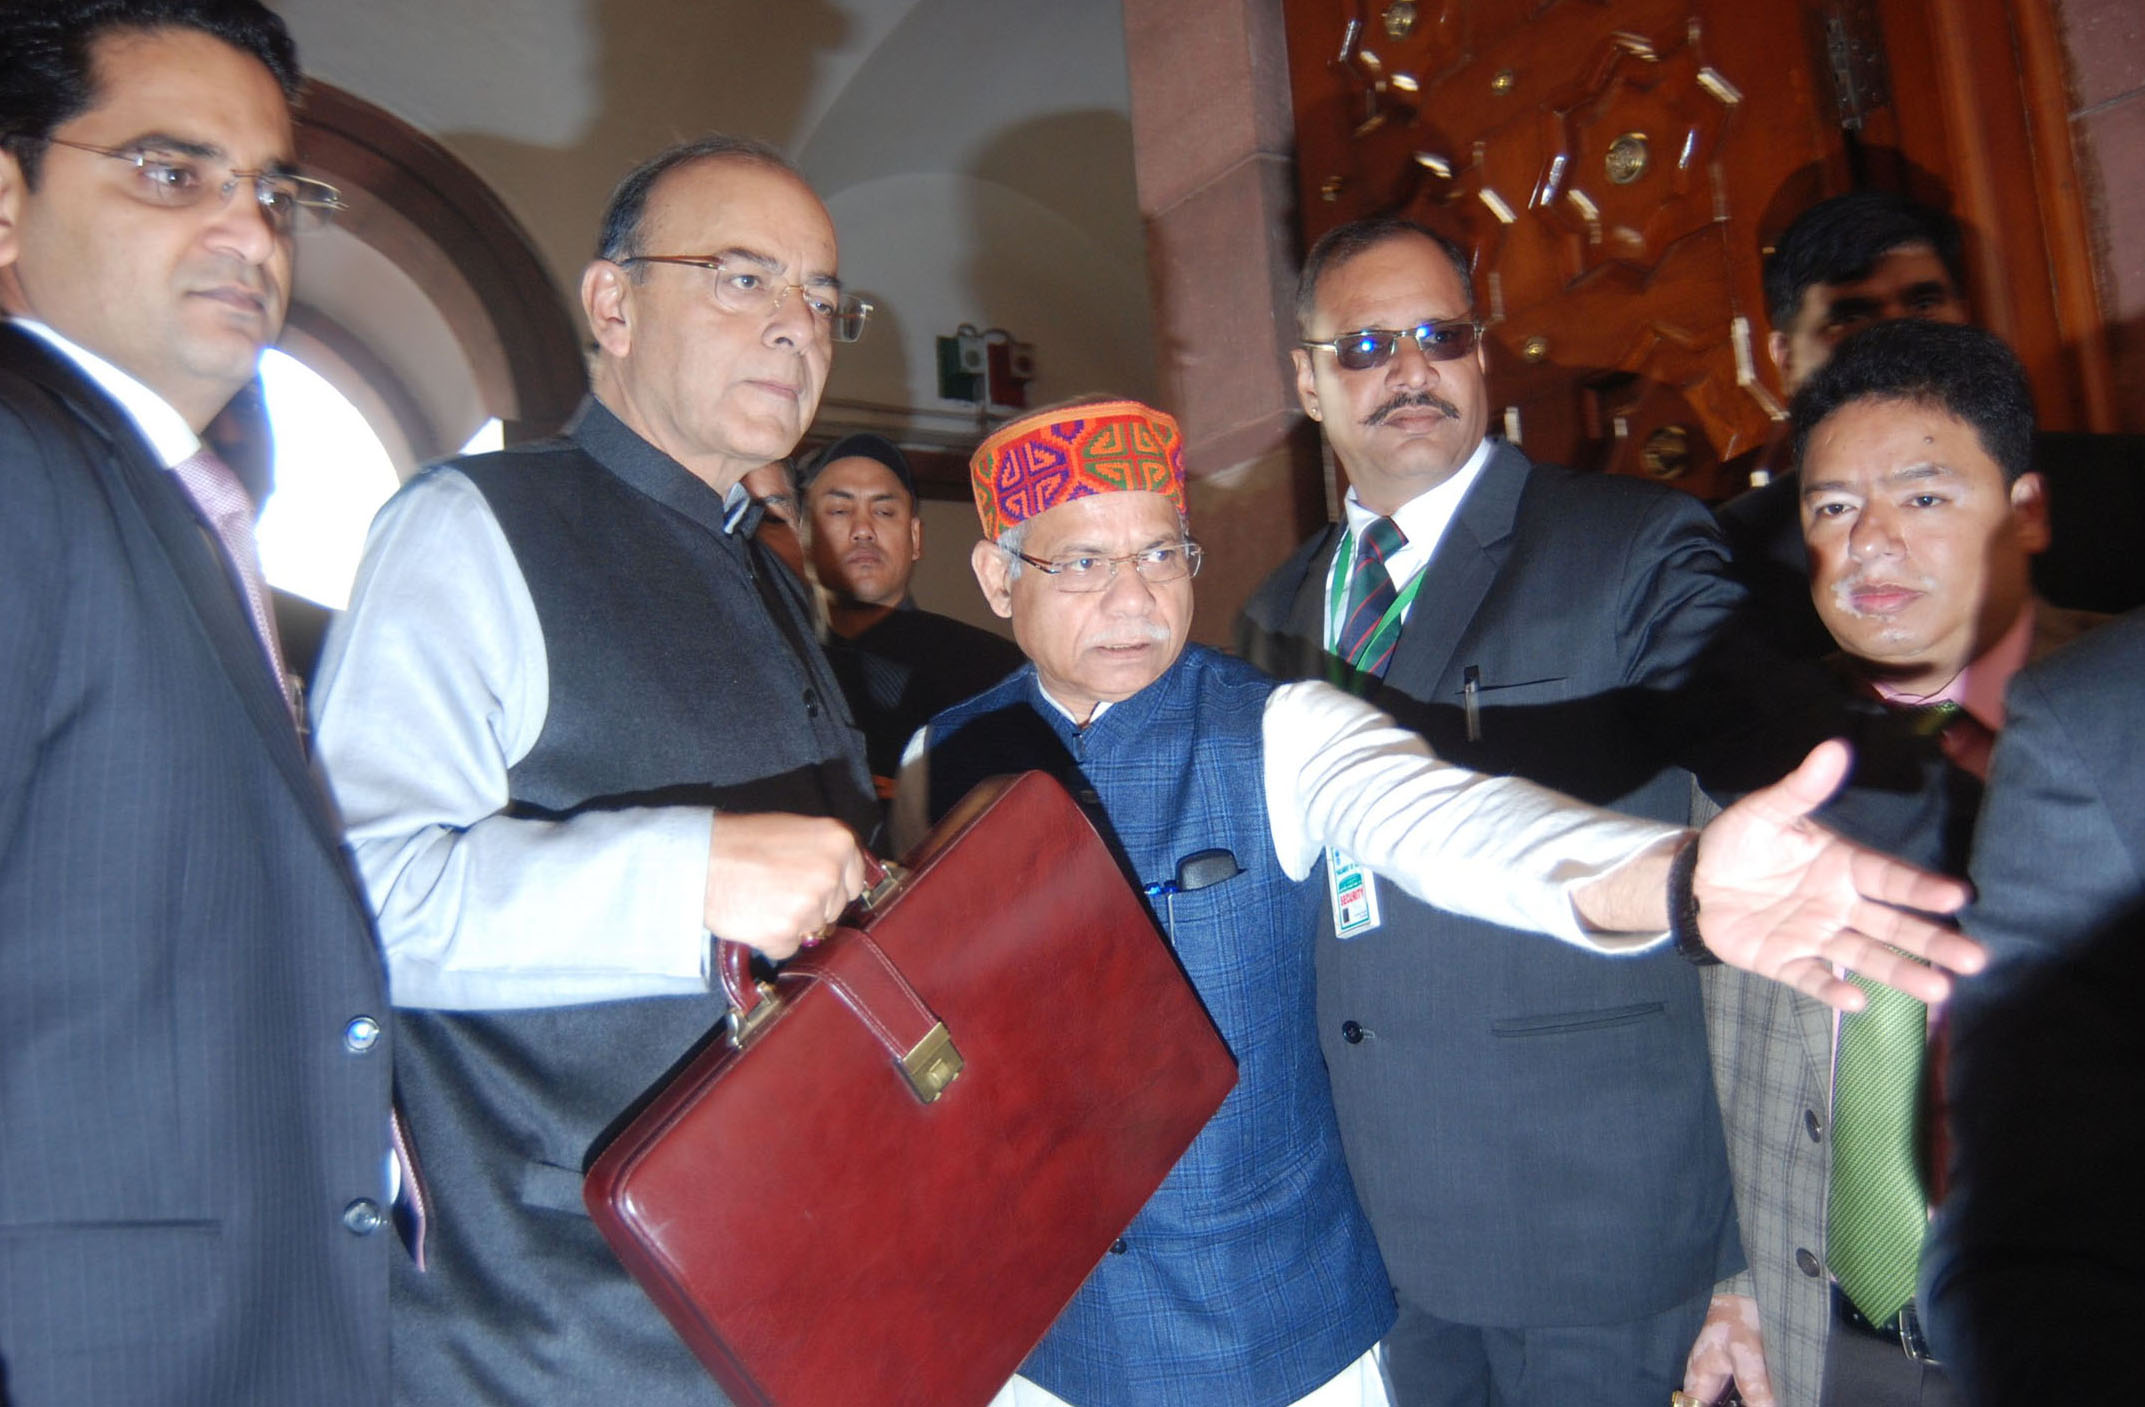 Indian Union Minister for Finance and Corporate Affairs Arun Jaitley (second left) along with the Minister of State for Finance, Shri Shiv Pratap Shukla arrives at Parliament House to present the General Budget 2018-19, in New Delhi on February 1, 2018. Photo courtesy: PIB